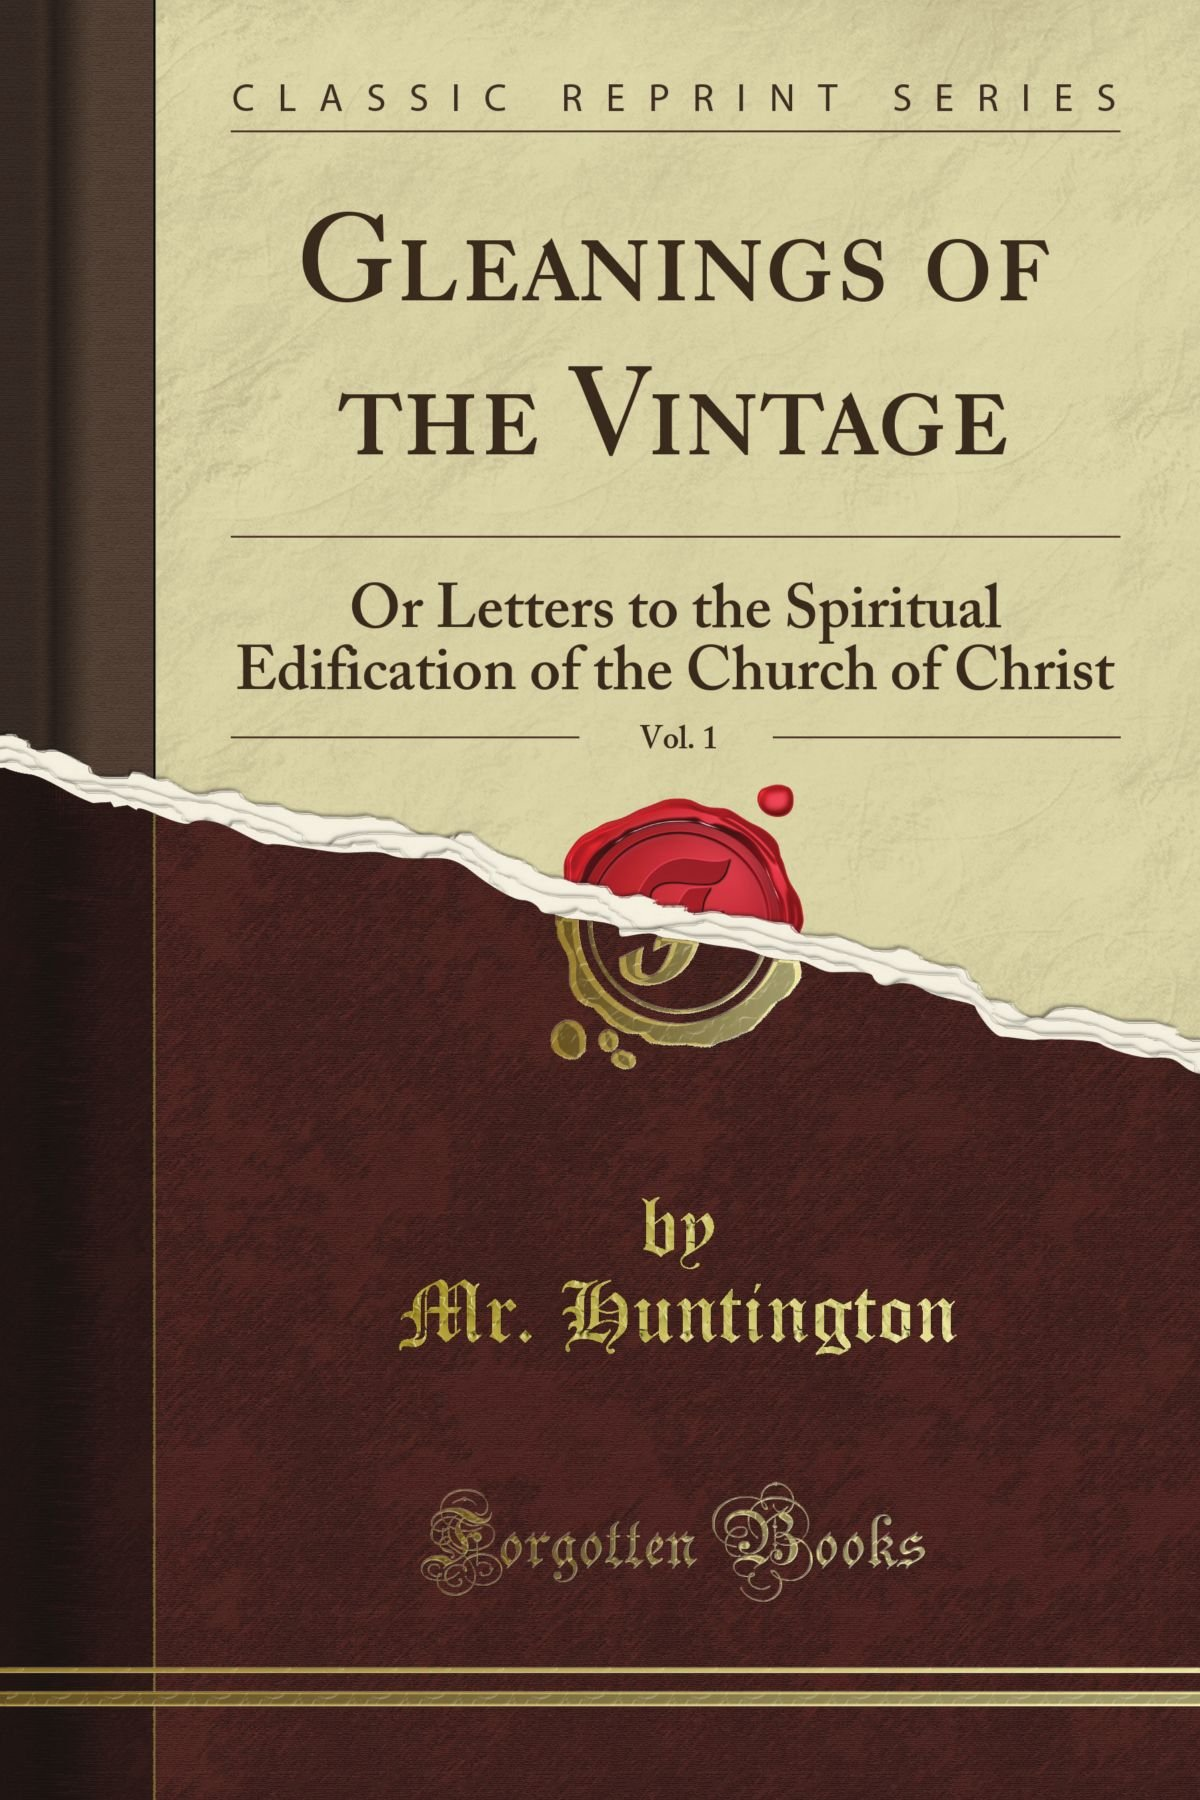 Gleanings of the Vintage: Or Letters to the Spiritual Edification of the Church of Christ, Vol. 1 (Classic Reprint) pdf